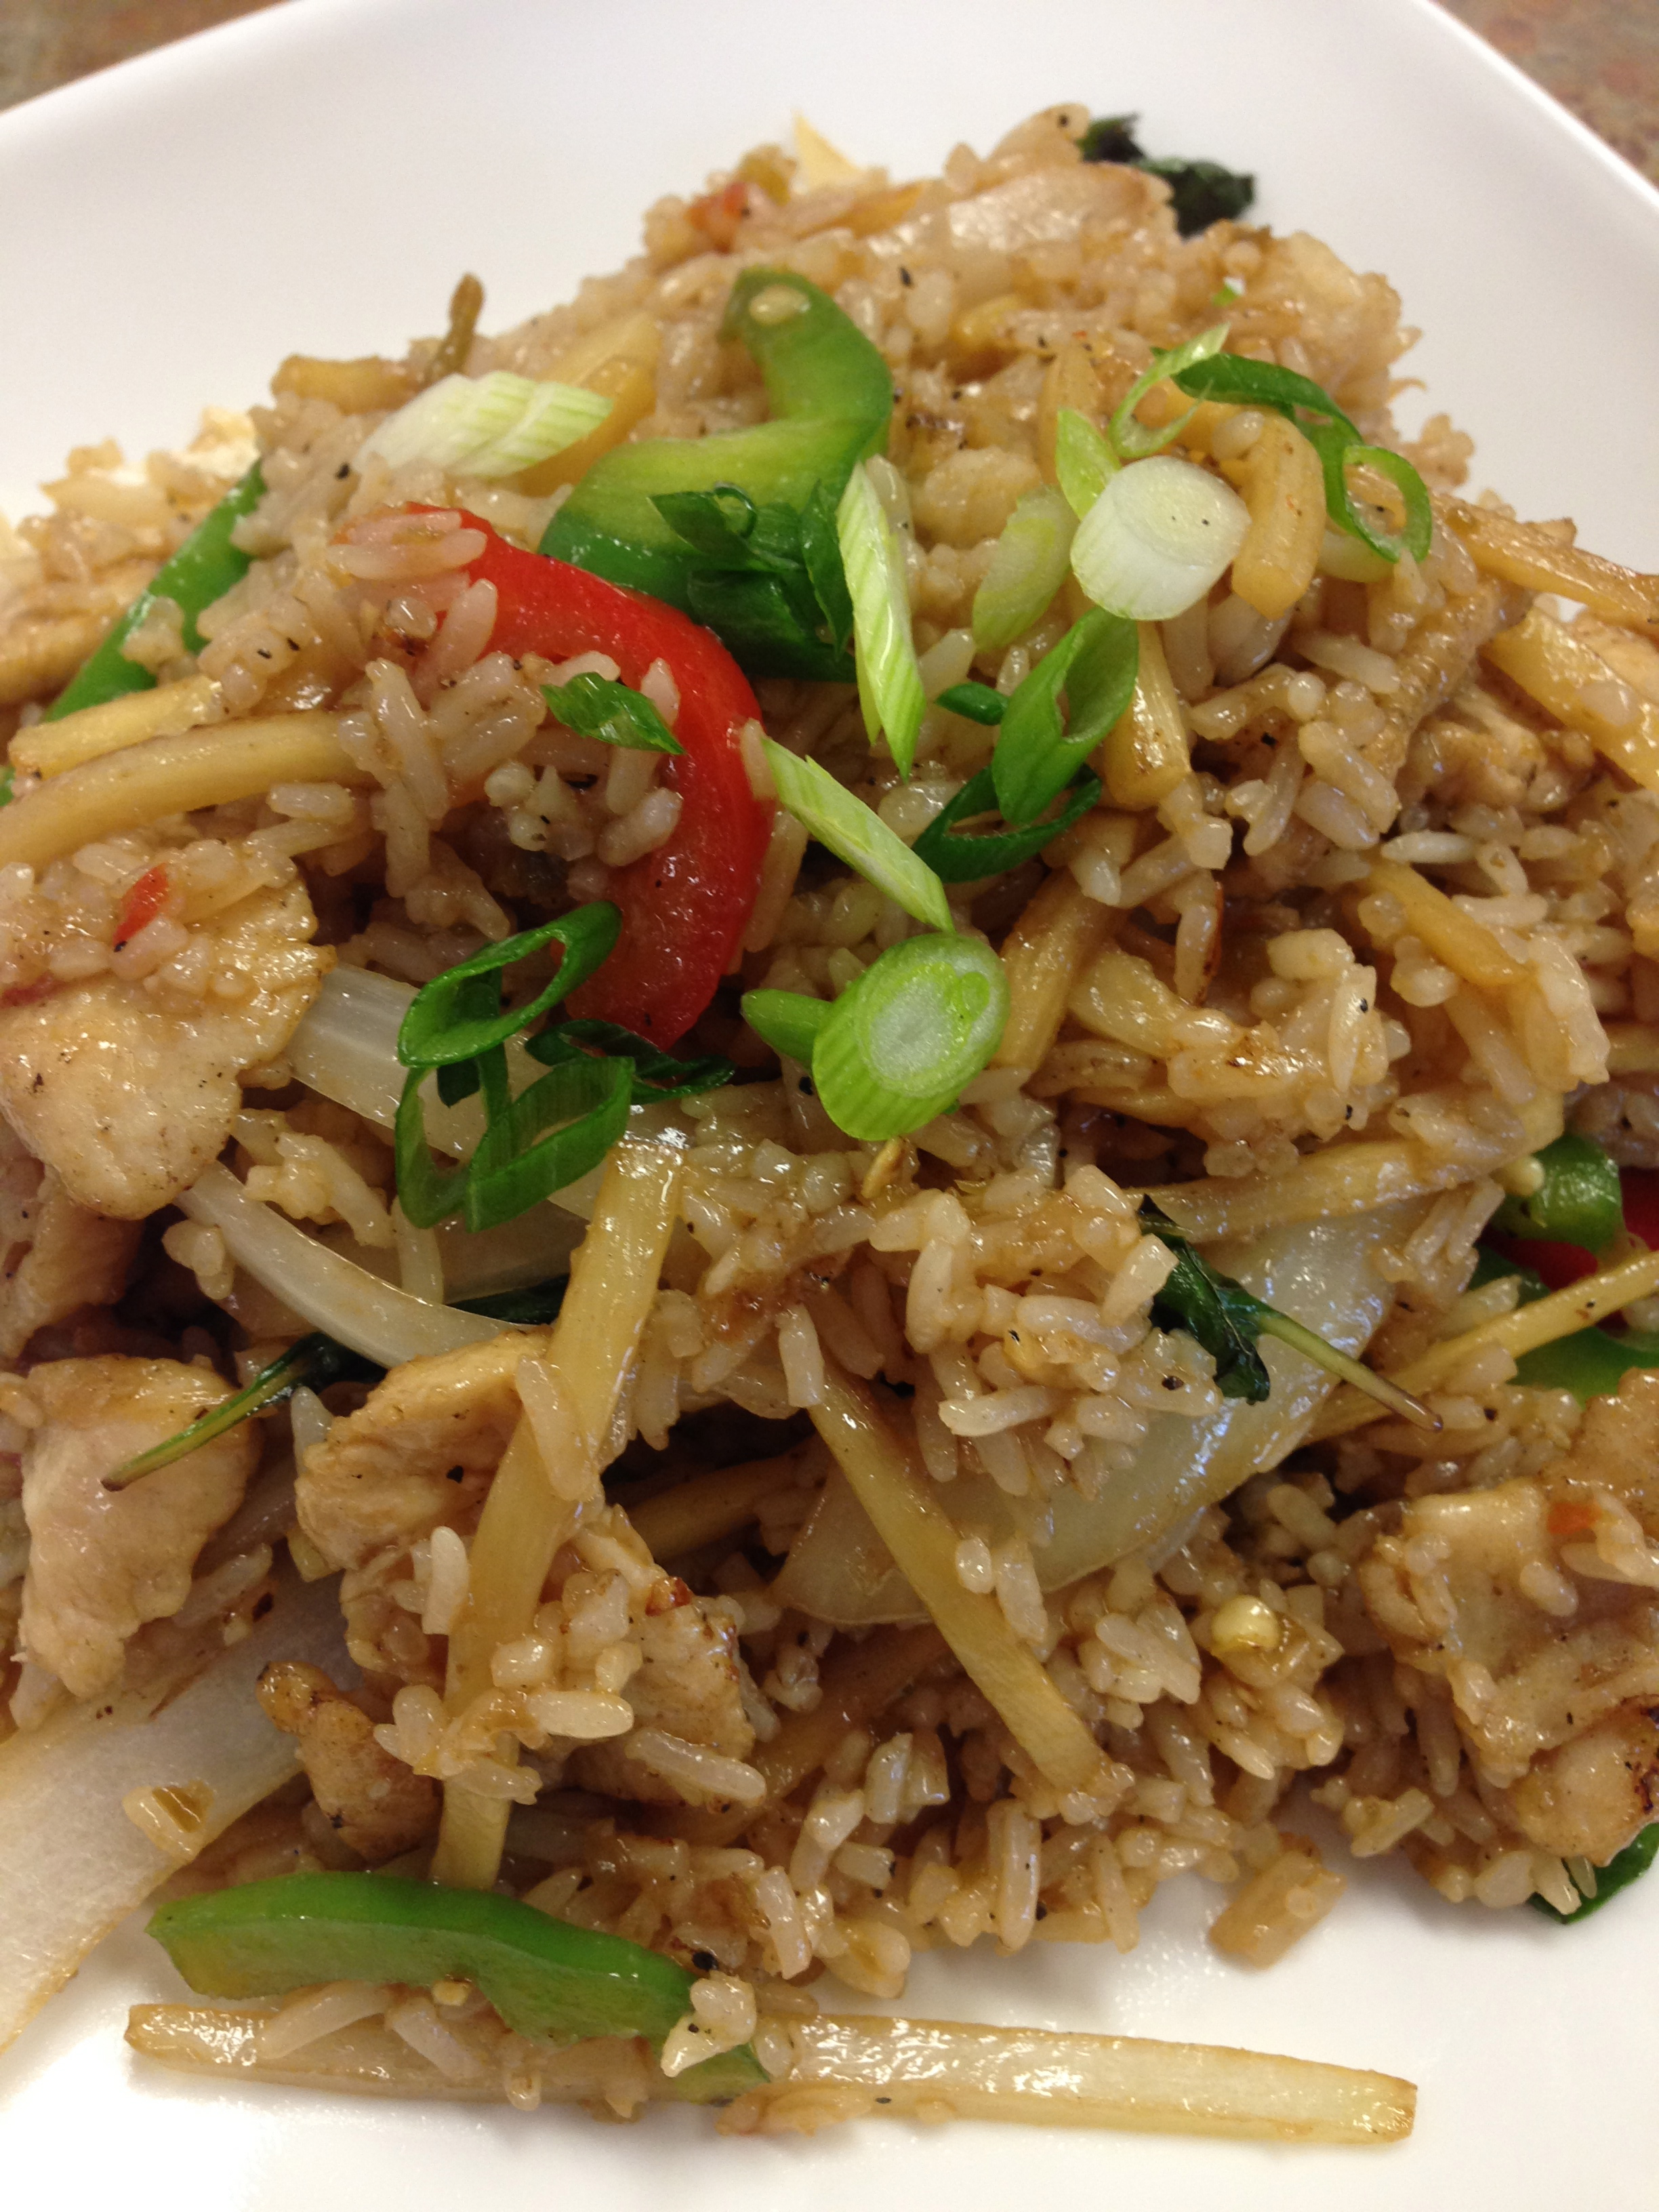 #32 SPICY FRIED RICE